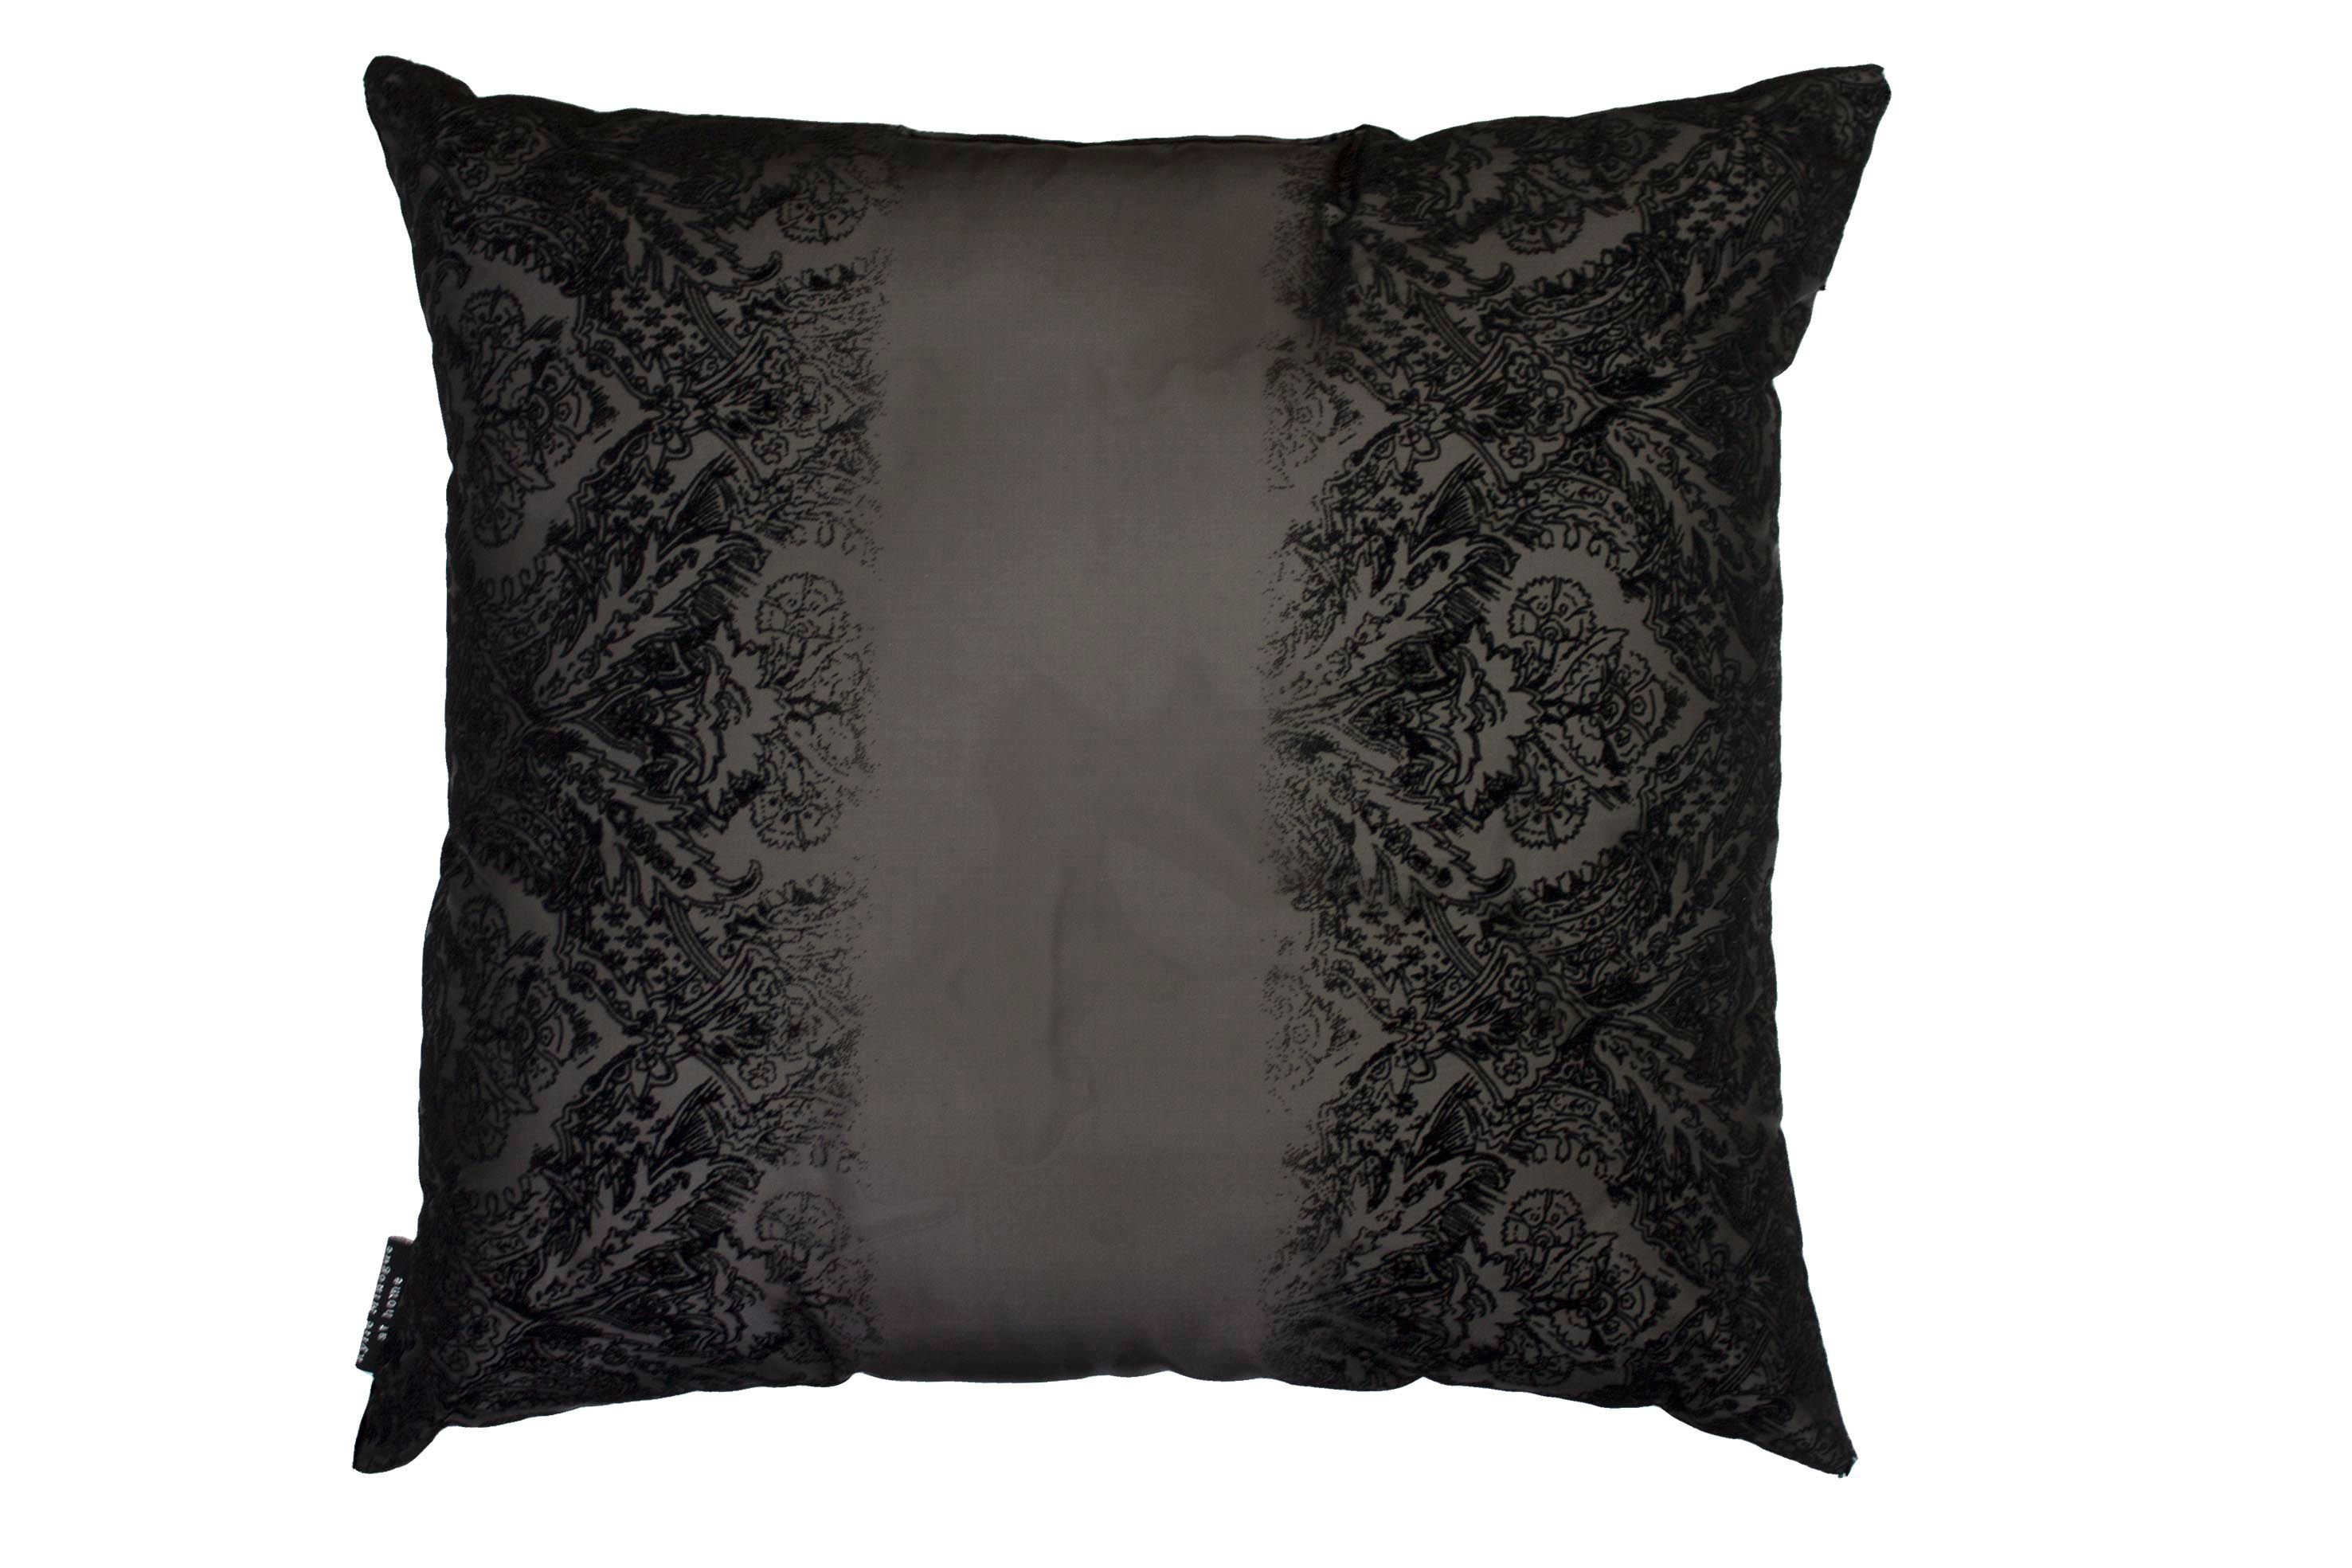 Image of Kylie Minogue Black flock voile co-ordinating cushion